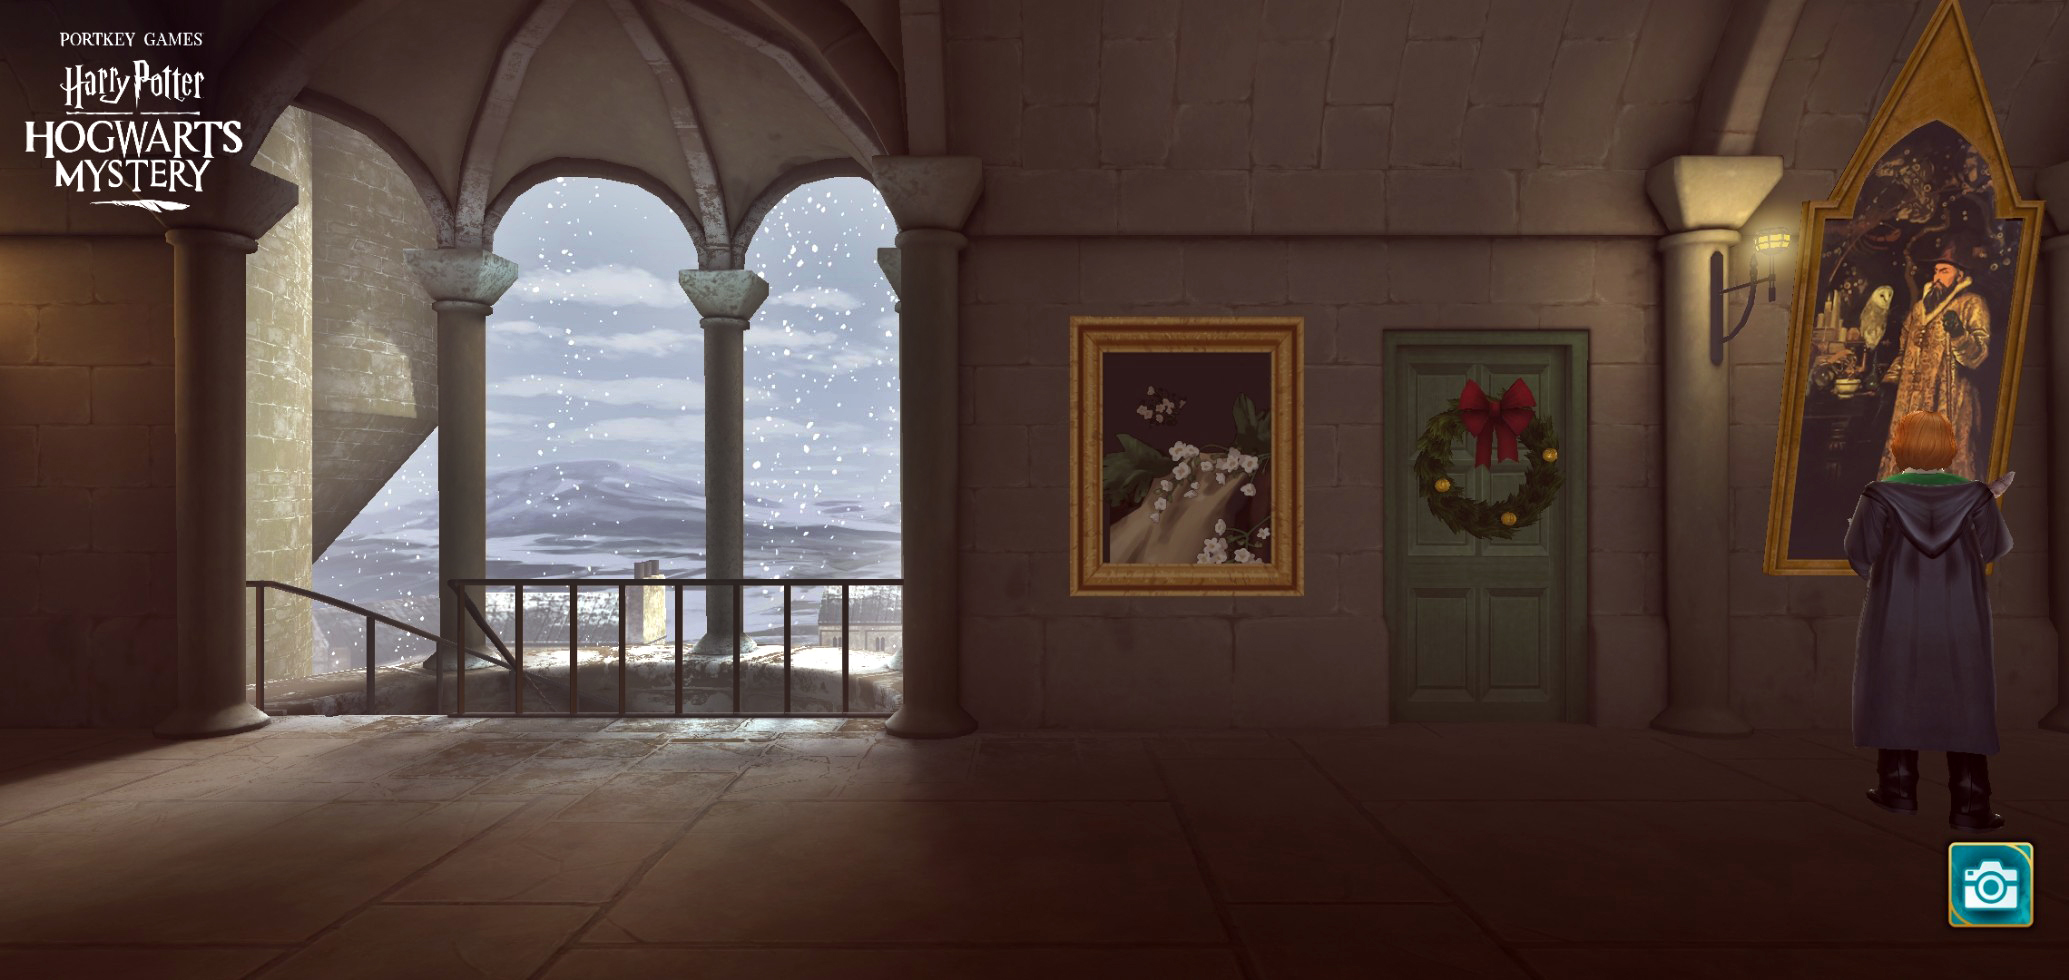 Even the limited view of the outdoors from outside the Gryffindor common room features an idyllic snowy scene.